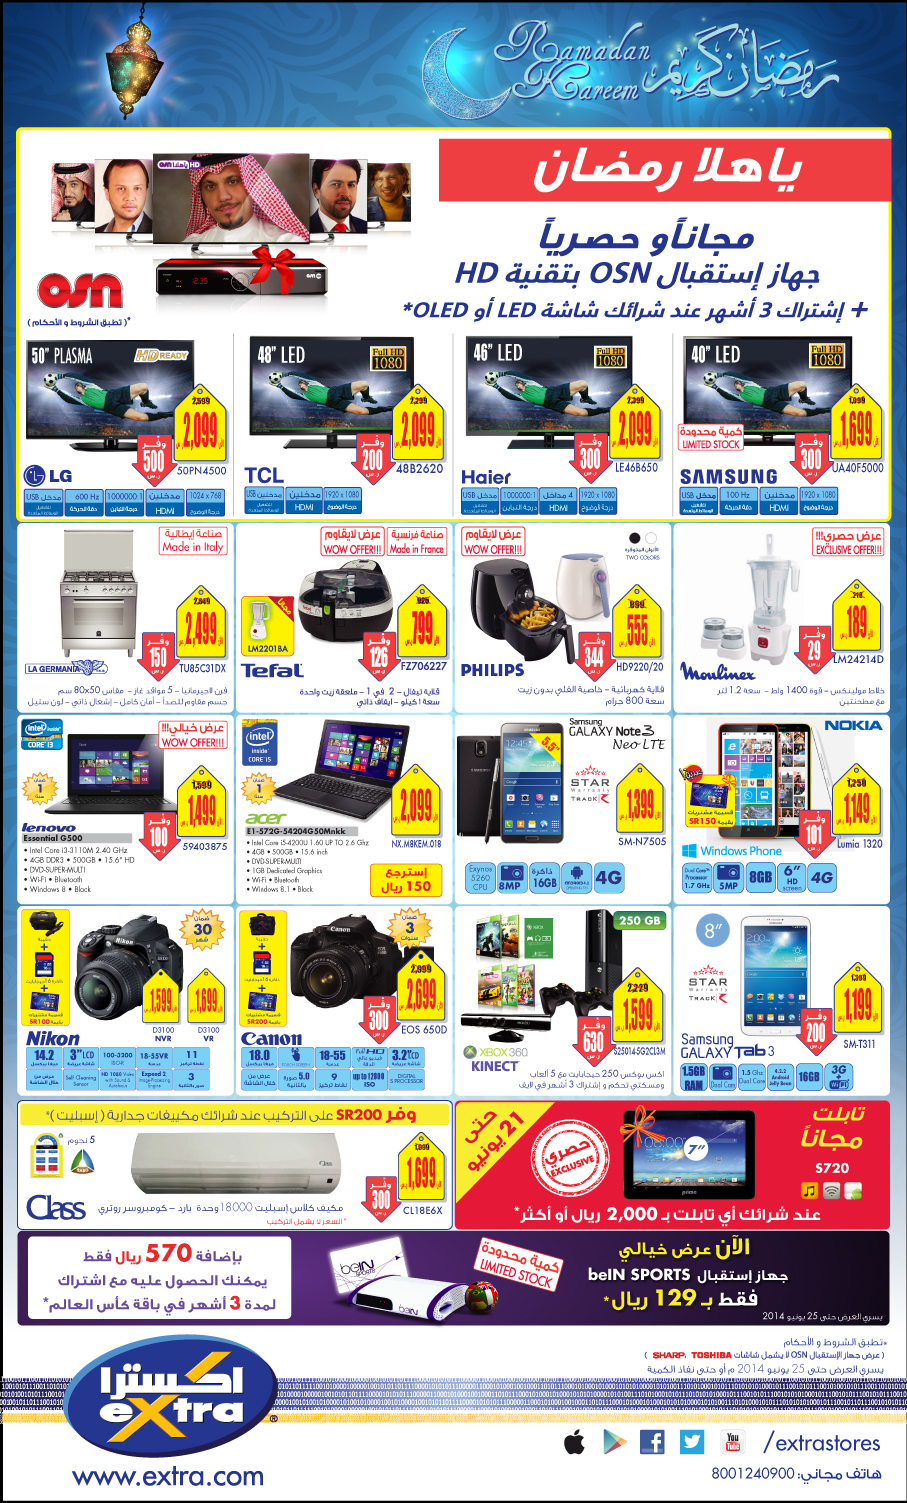 Ramadan offers 2014 at Extra Stores